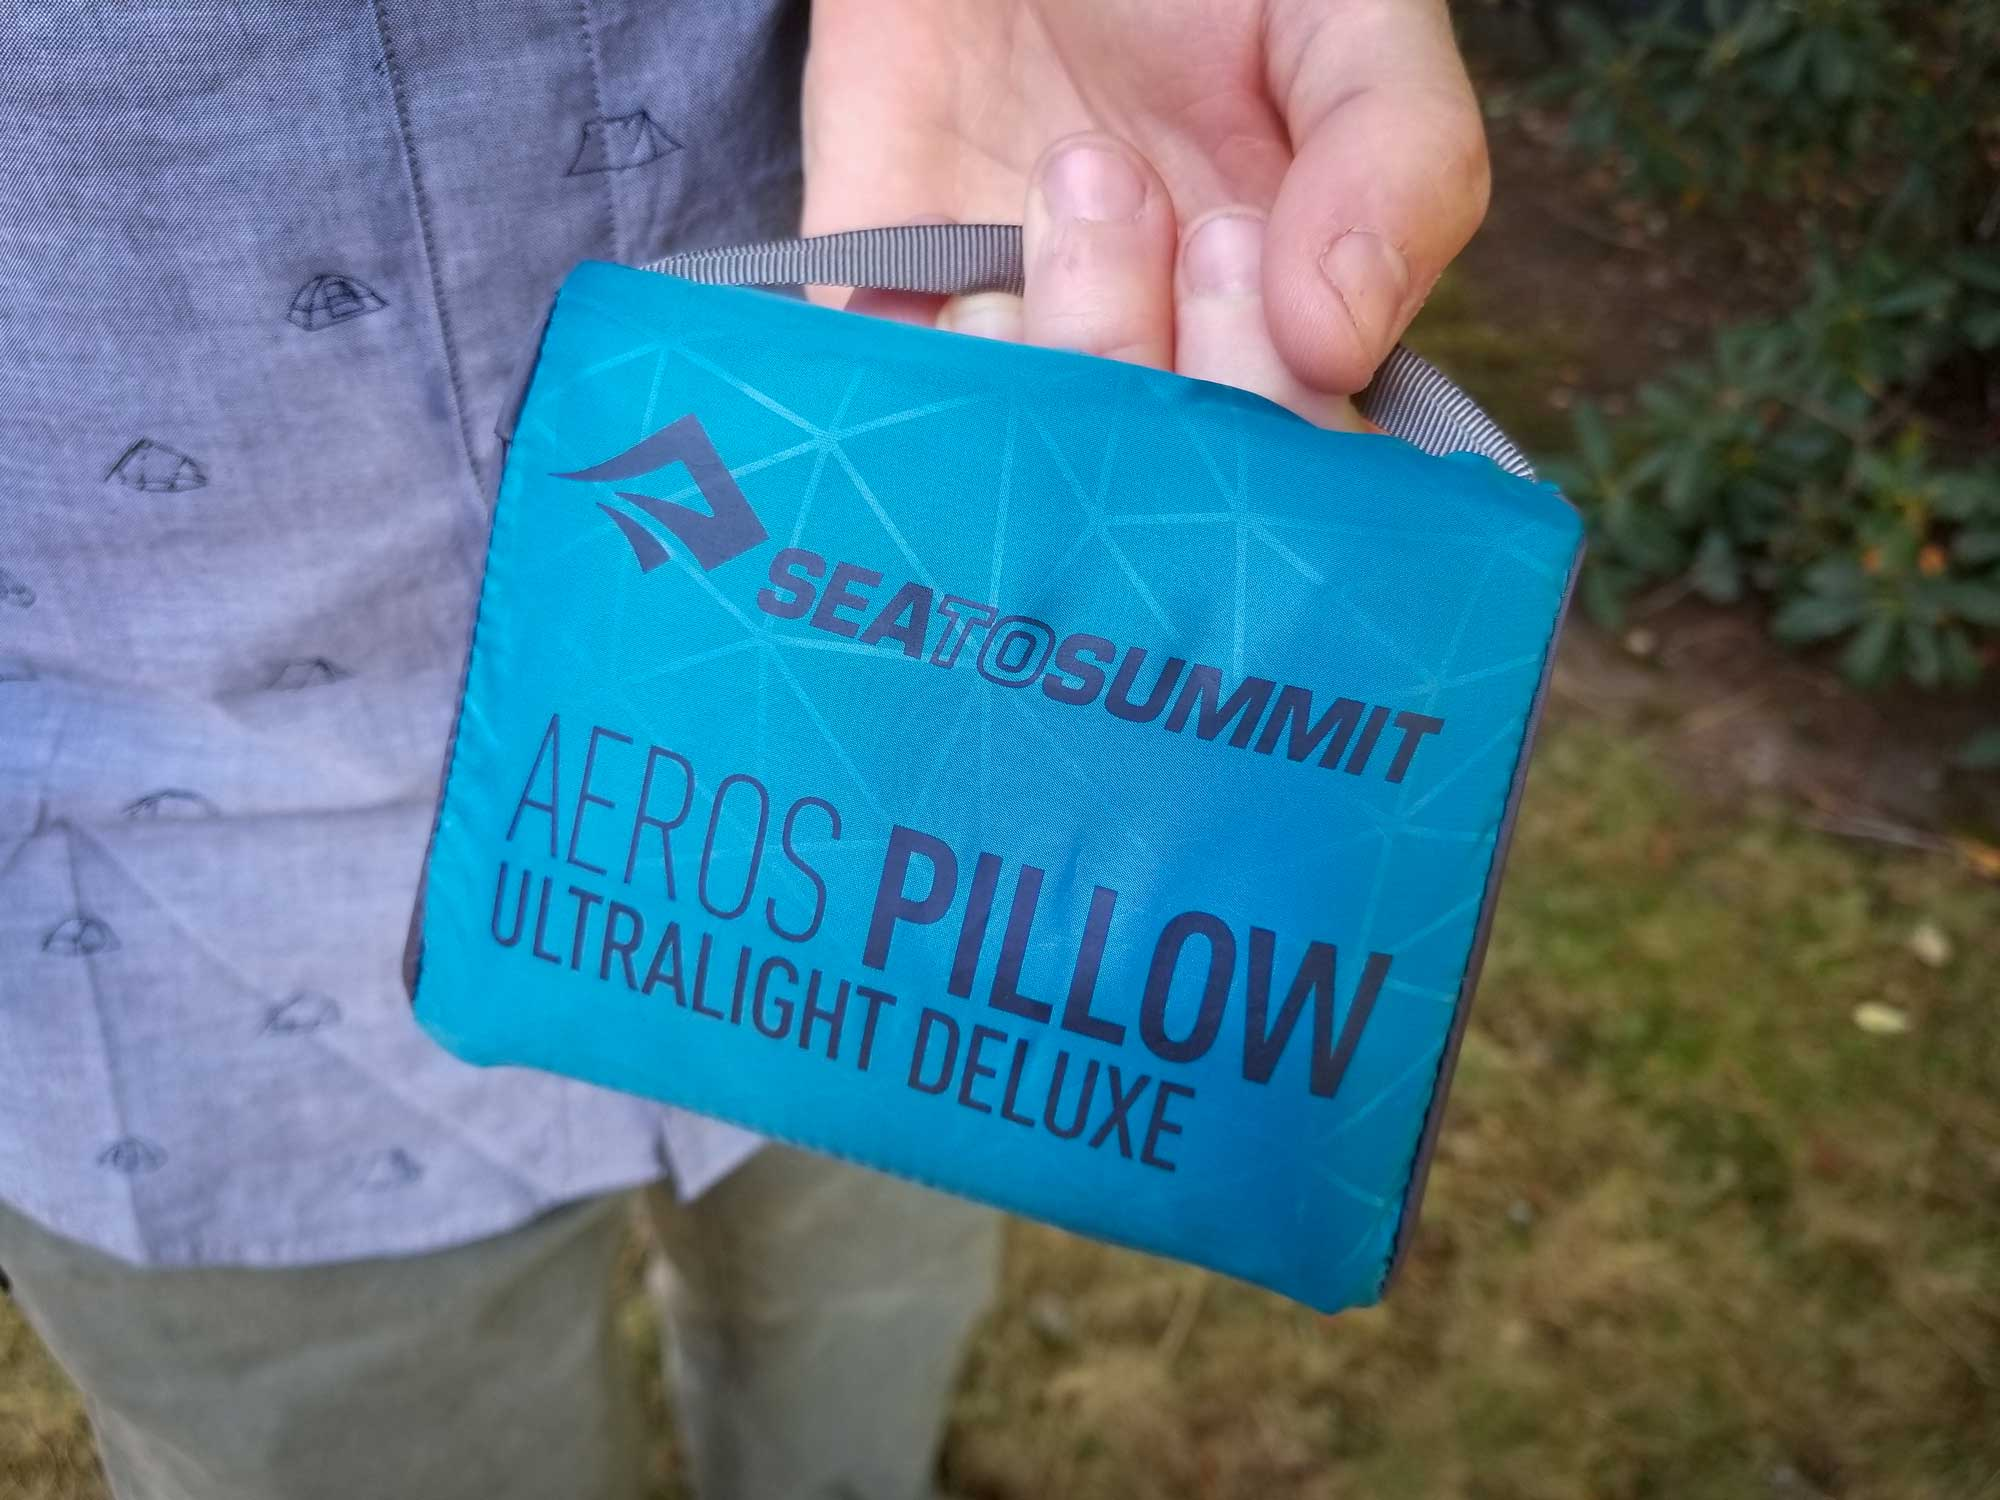 The Sea to Summit Aeros Ultralight Deluxe pillow comes in a blue zippered pouch.